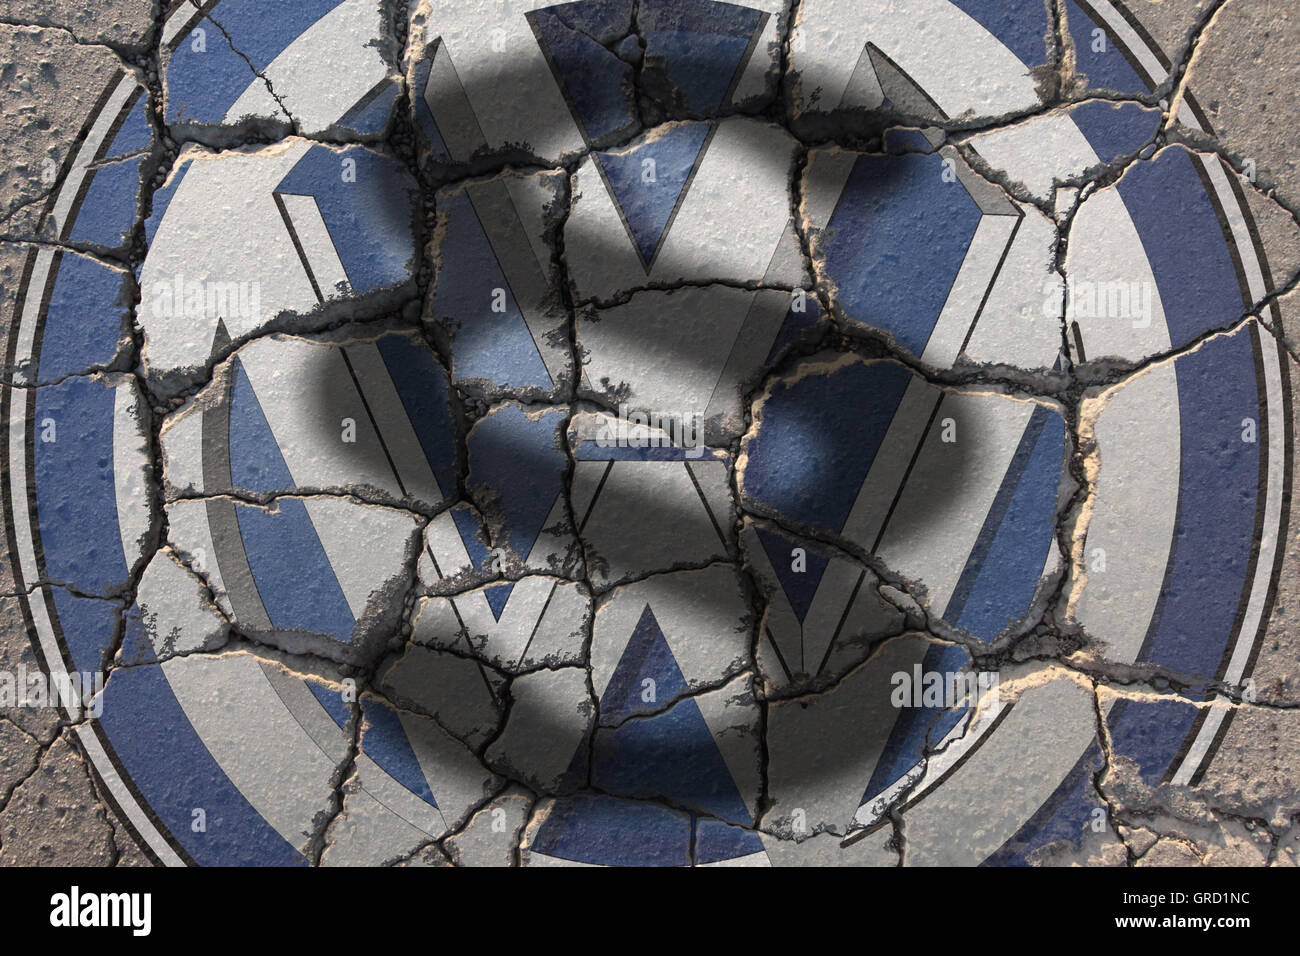 Crisis At Volkswagen Vw Sign On Eroding Road With Paragraph - Stock Image